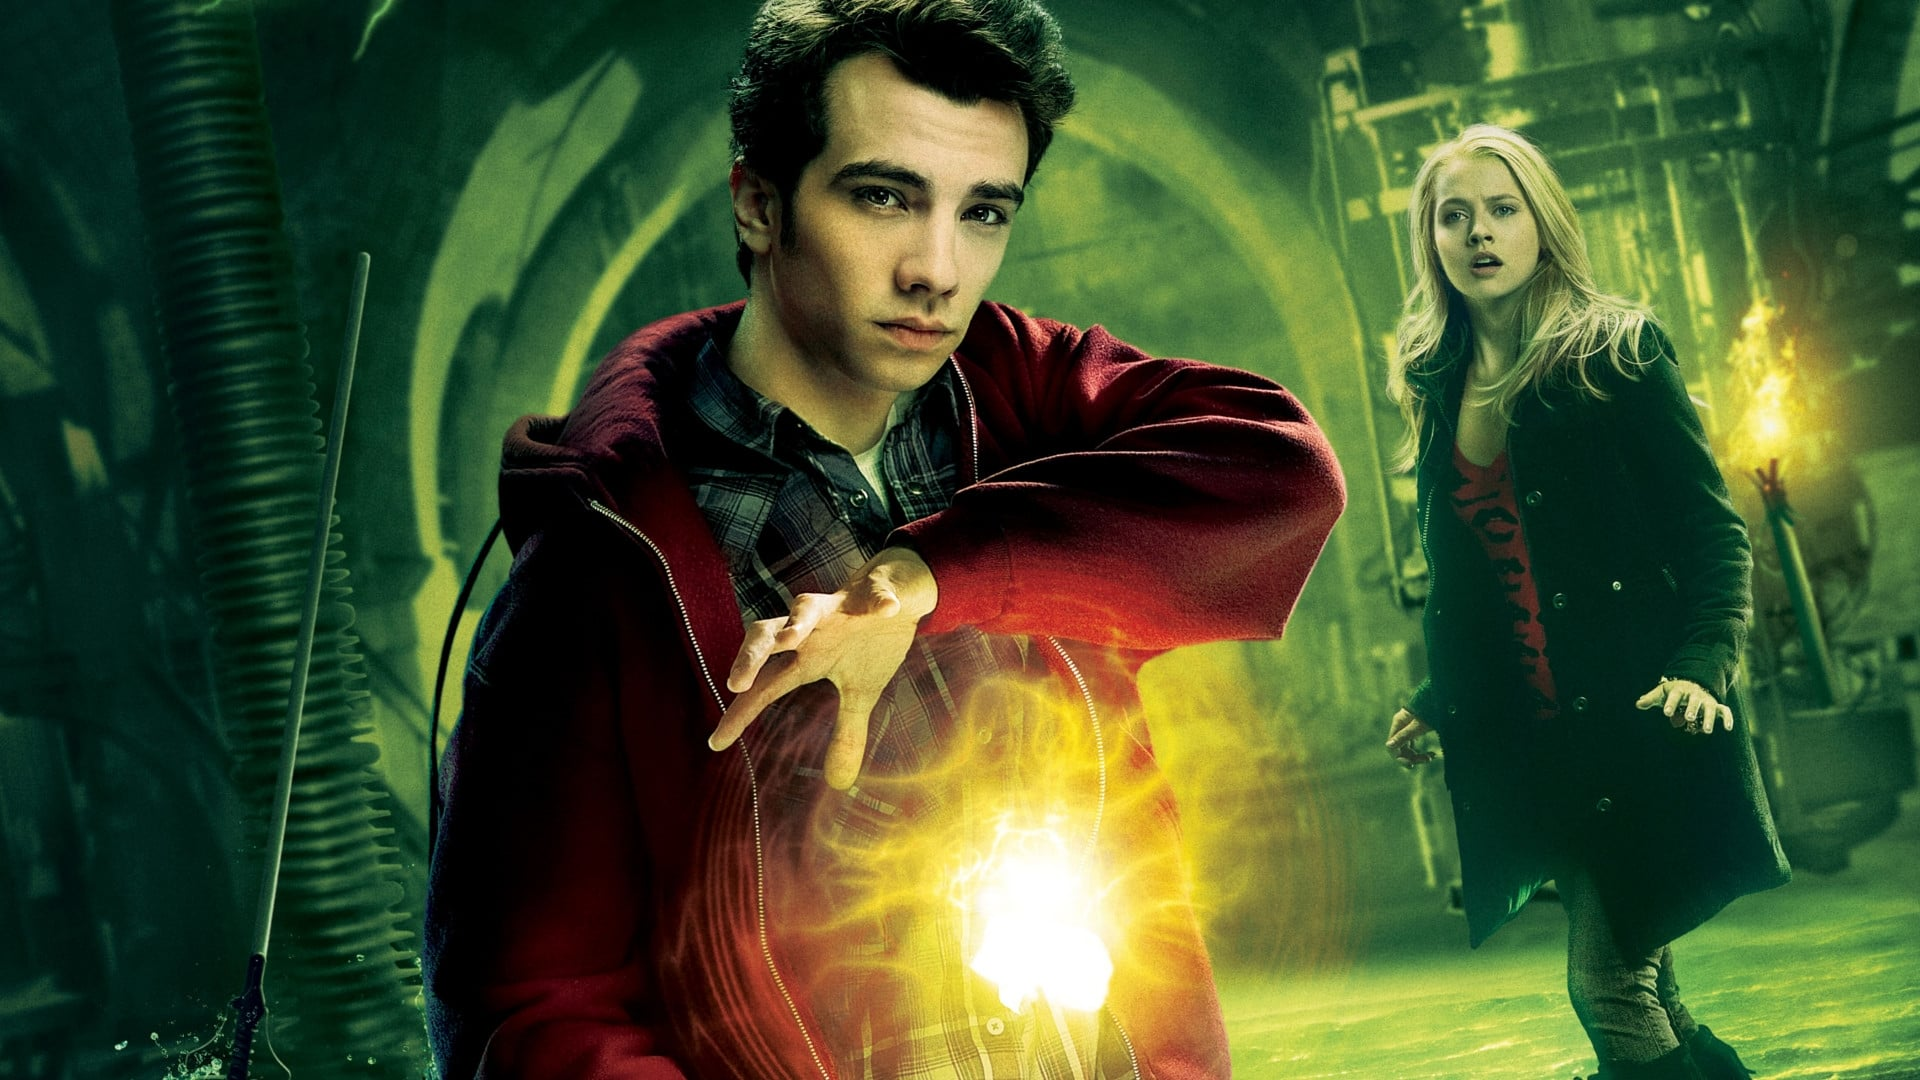 the sorcerers apprentice 2010 123 movies online